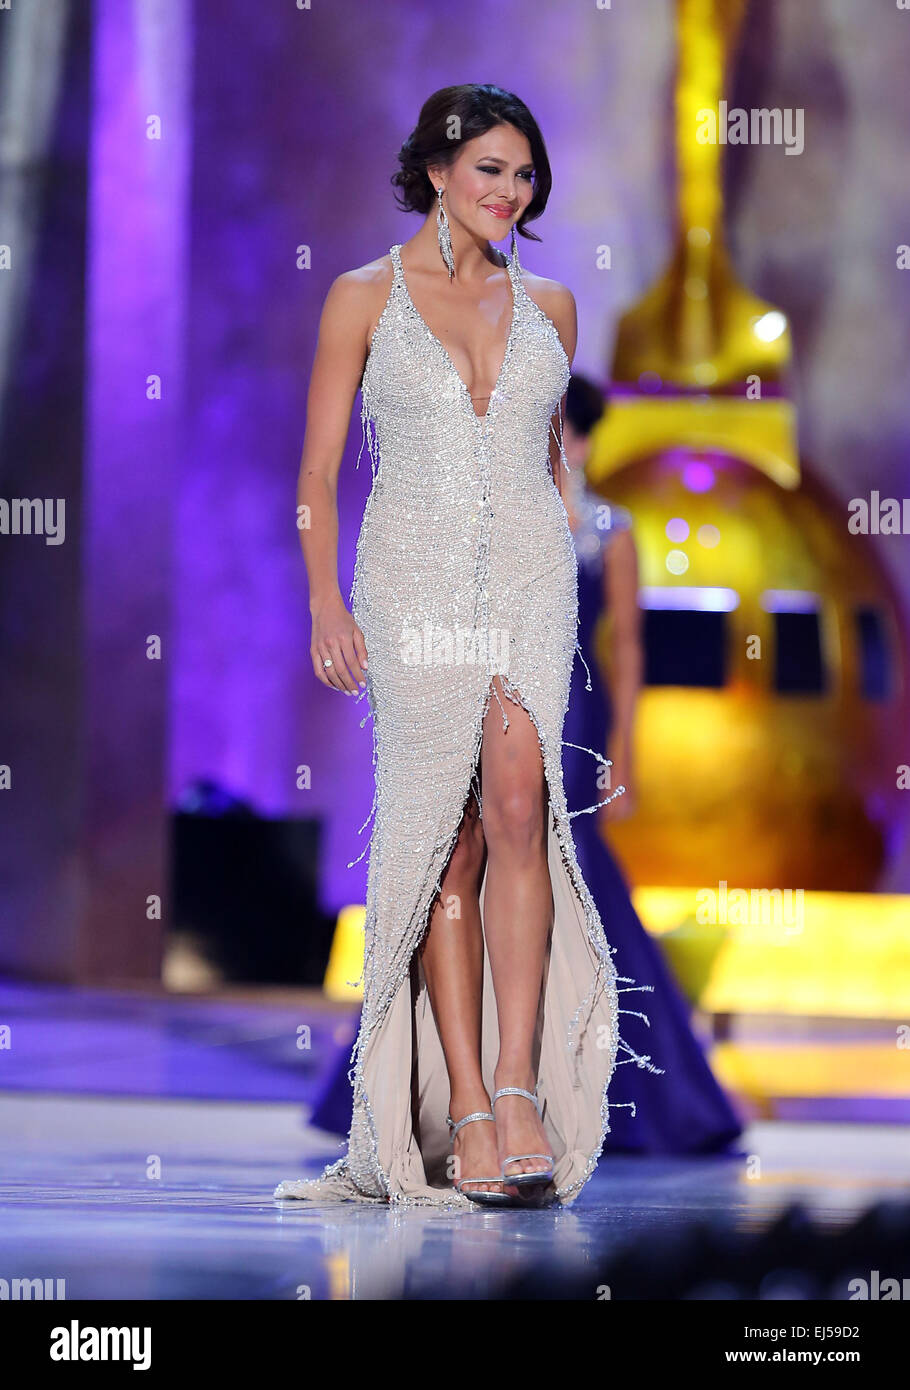 Miss New York Kira Kazantsev is named crowned Miss America at the 2015 Miss America Competition at Boardwalk Hall - Stock Image